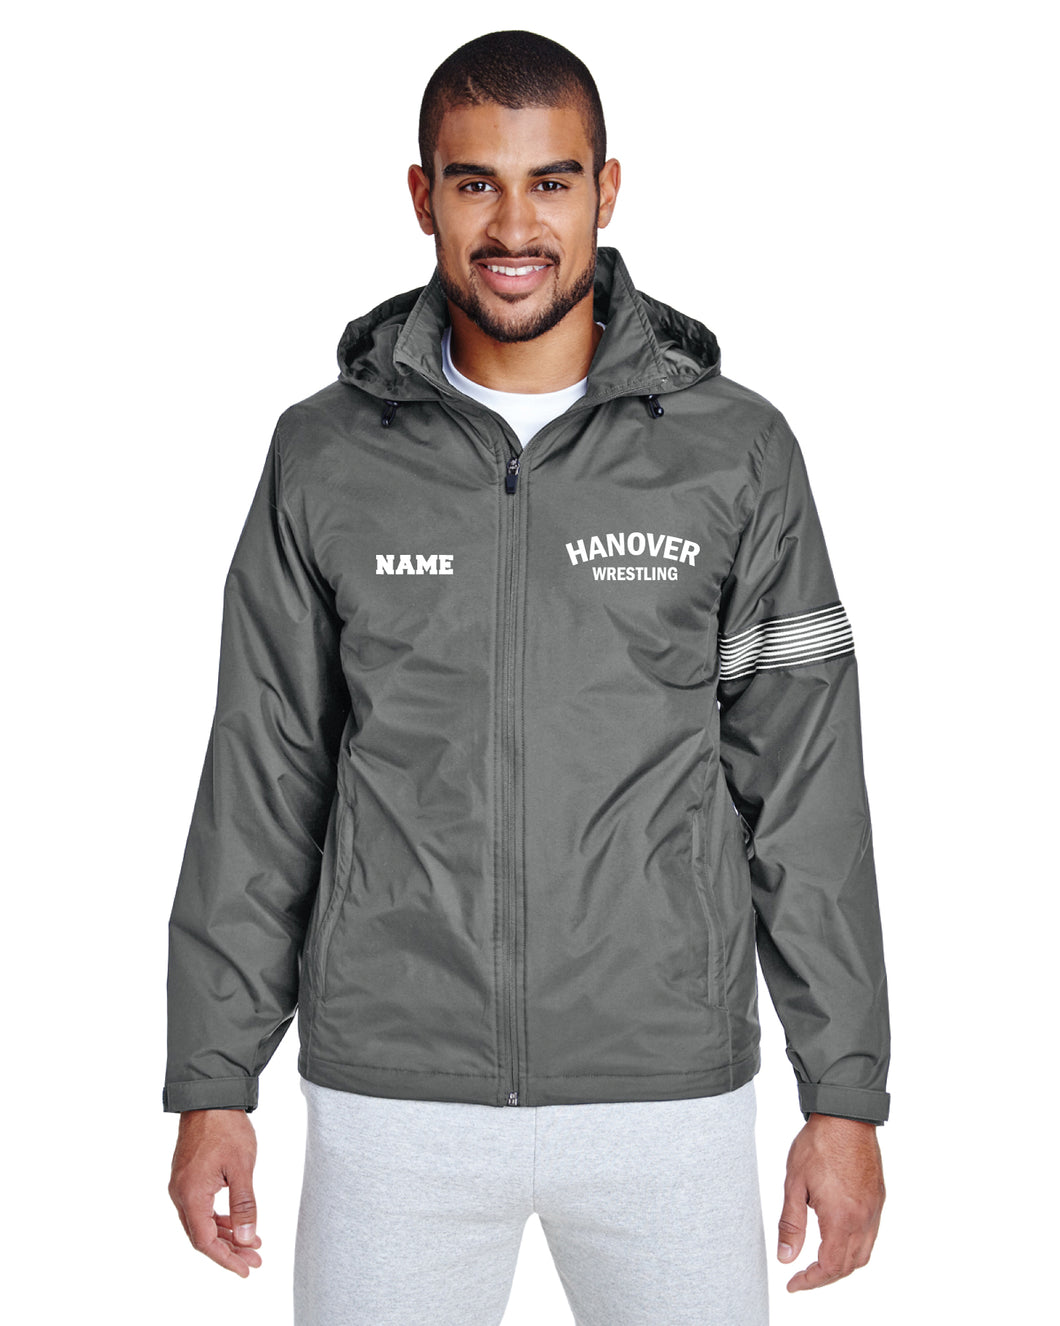 Hanover Township Wrestling All Season Hooded Men's Jacket - Sport Graphite